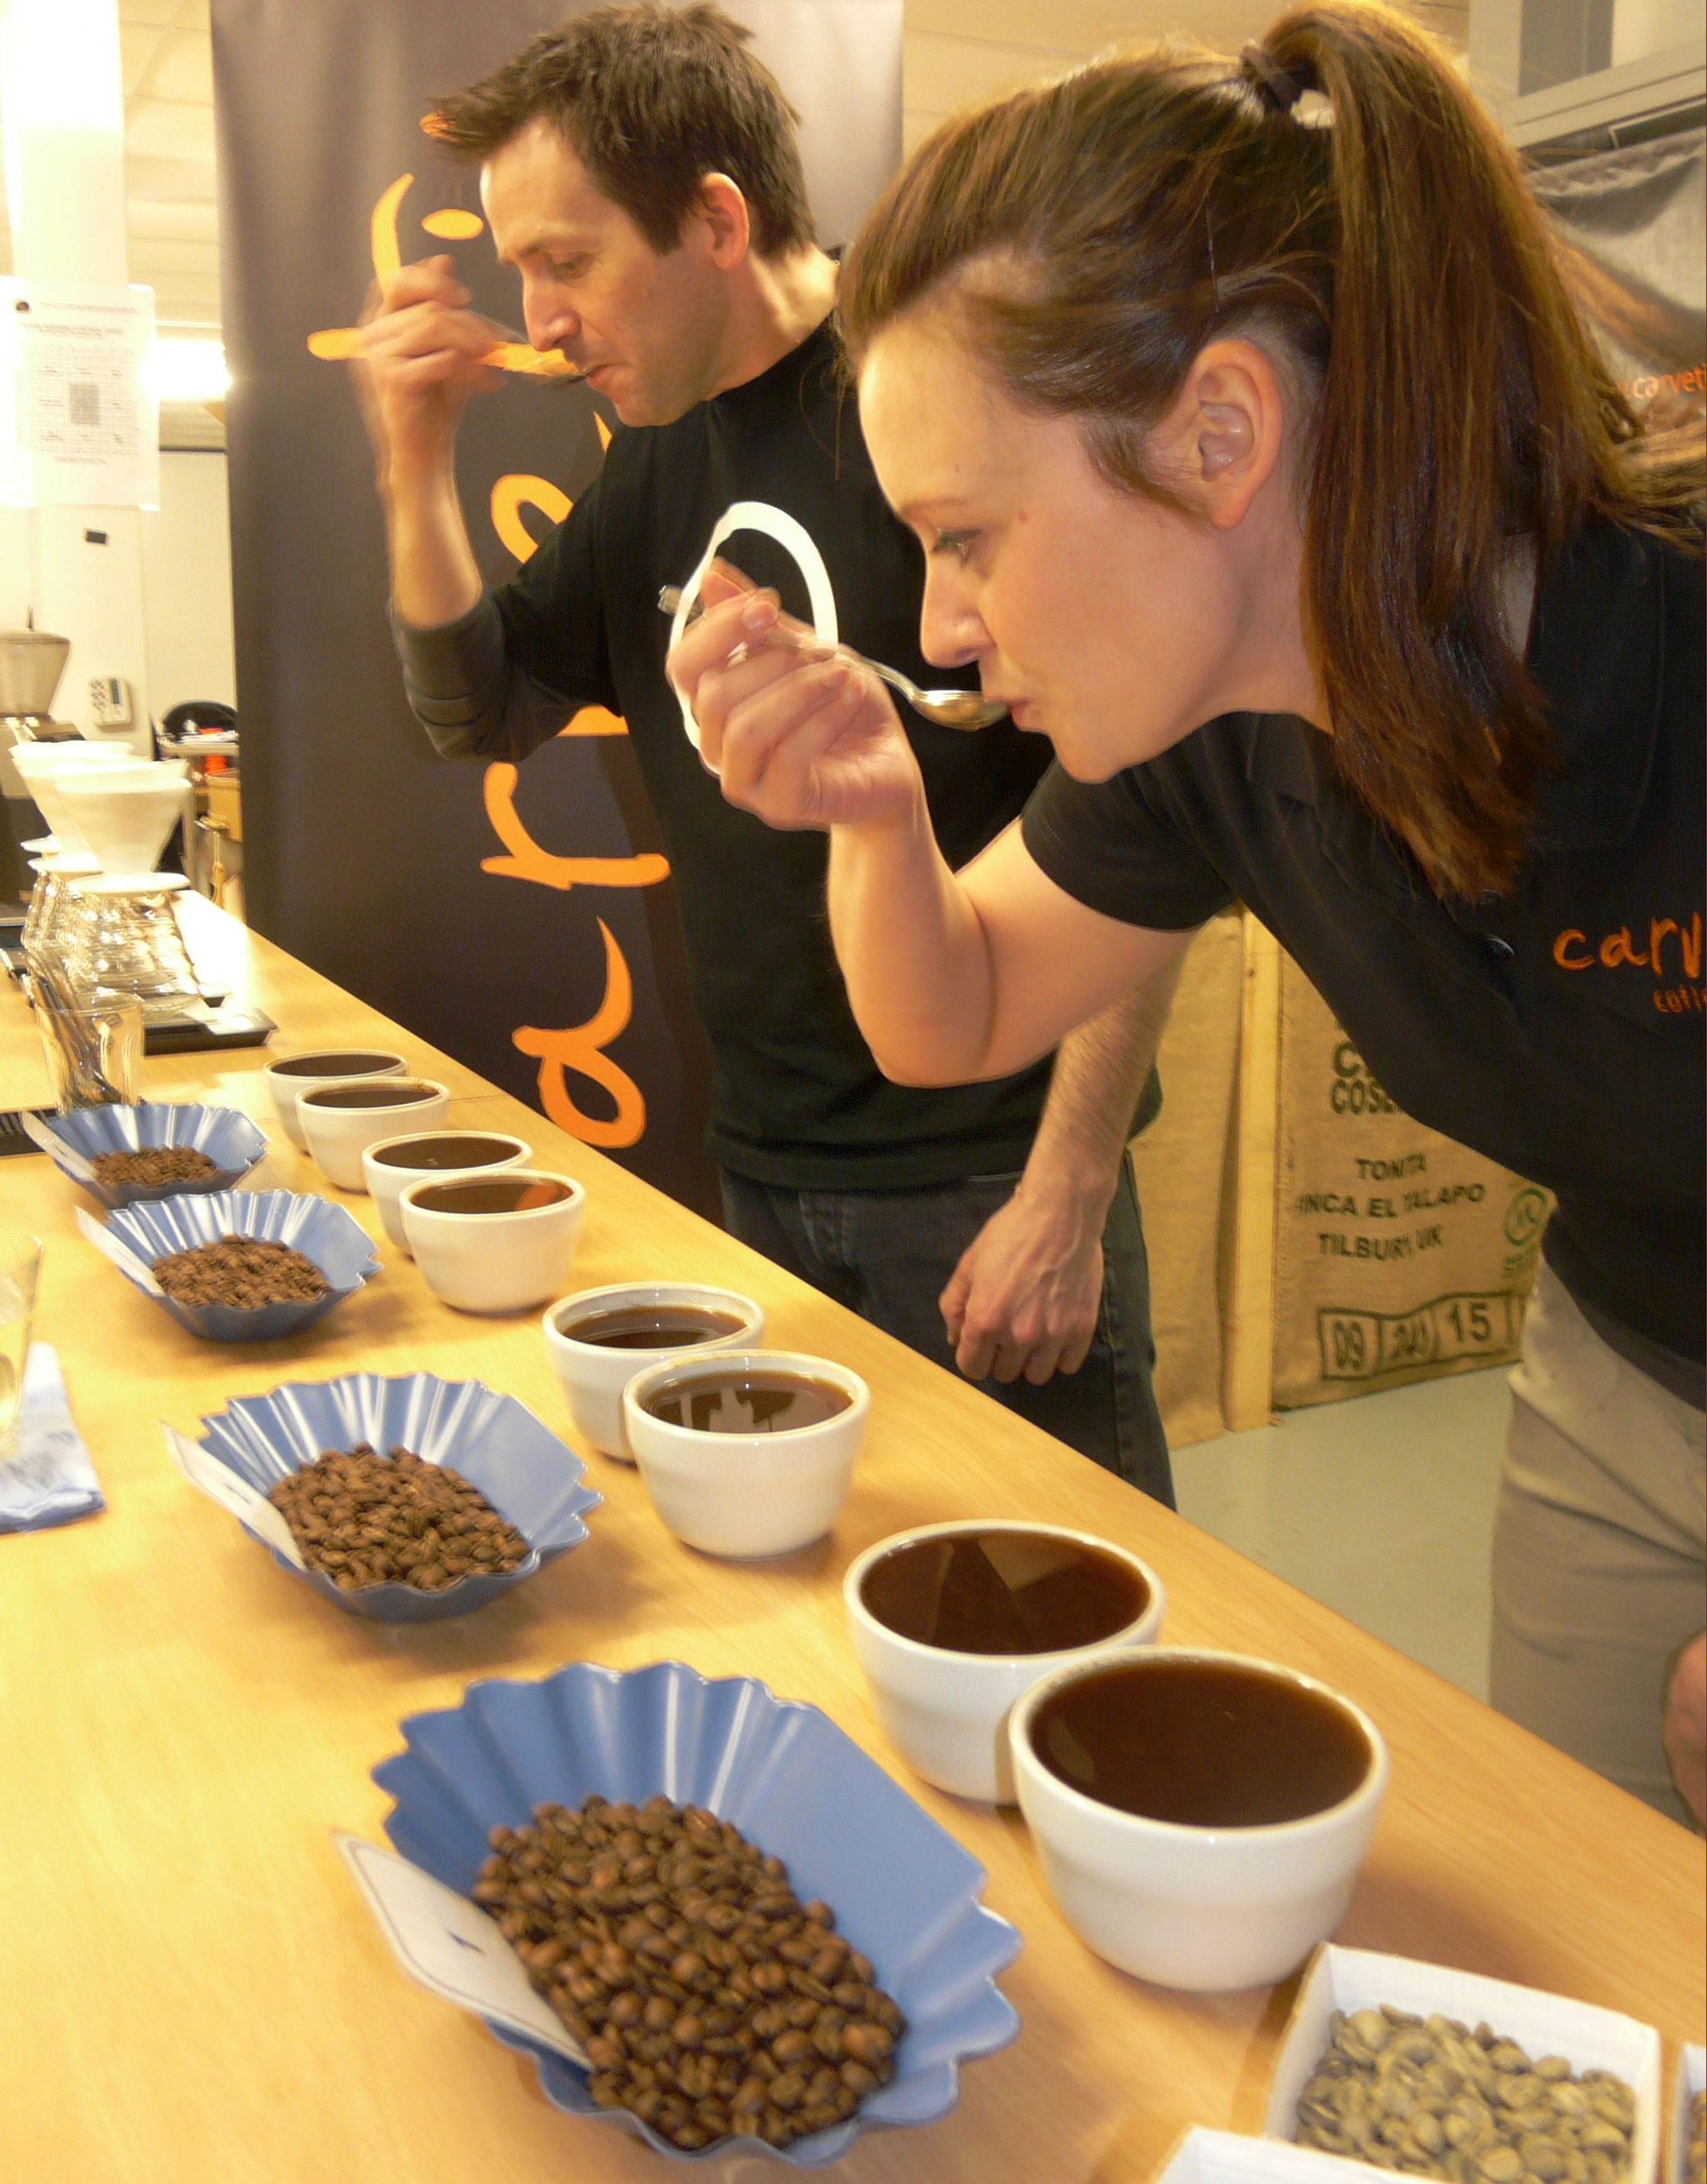 gareth and angharad cupping their coffee's via @carvetiicoffee